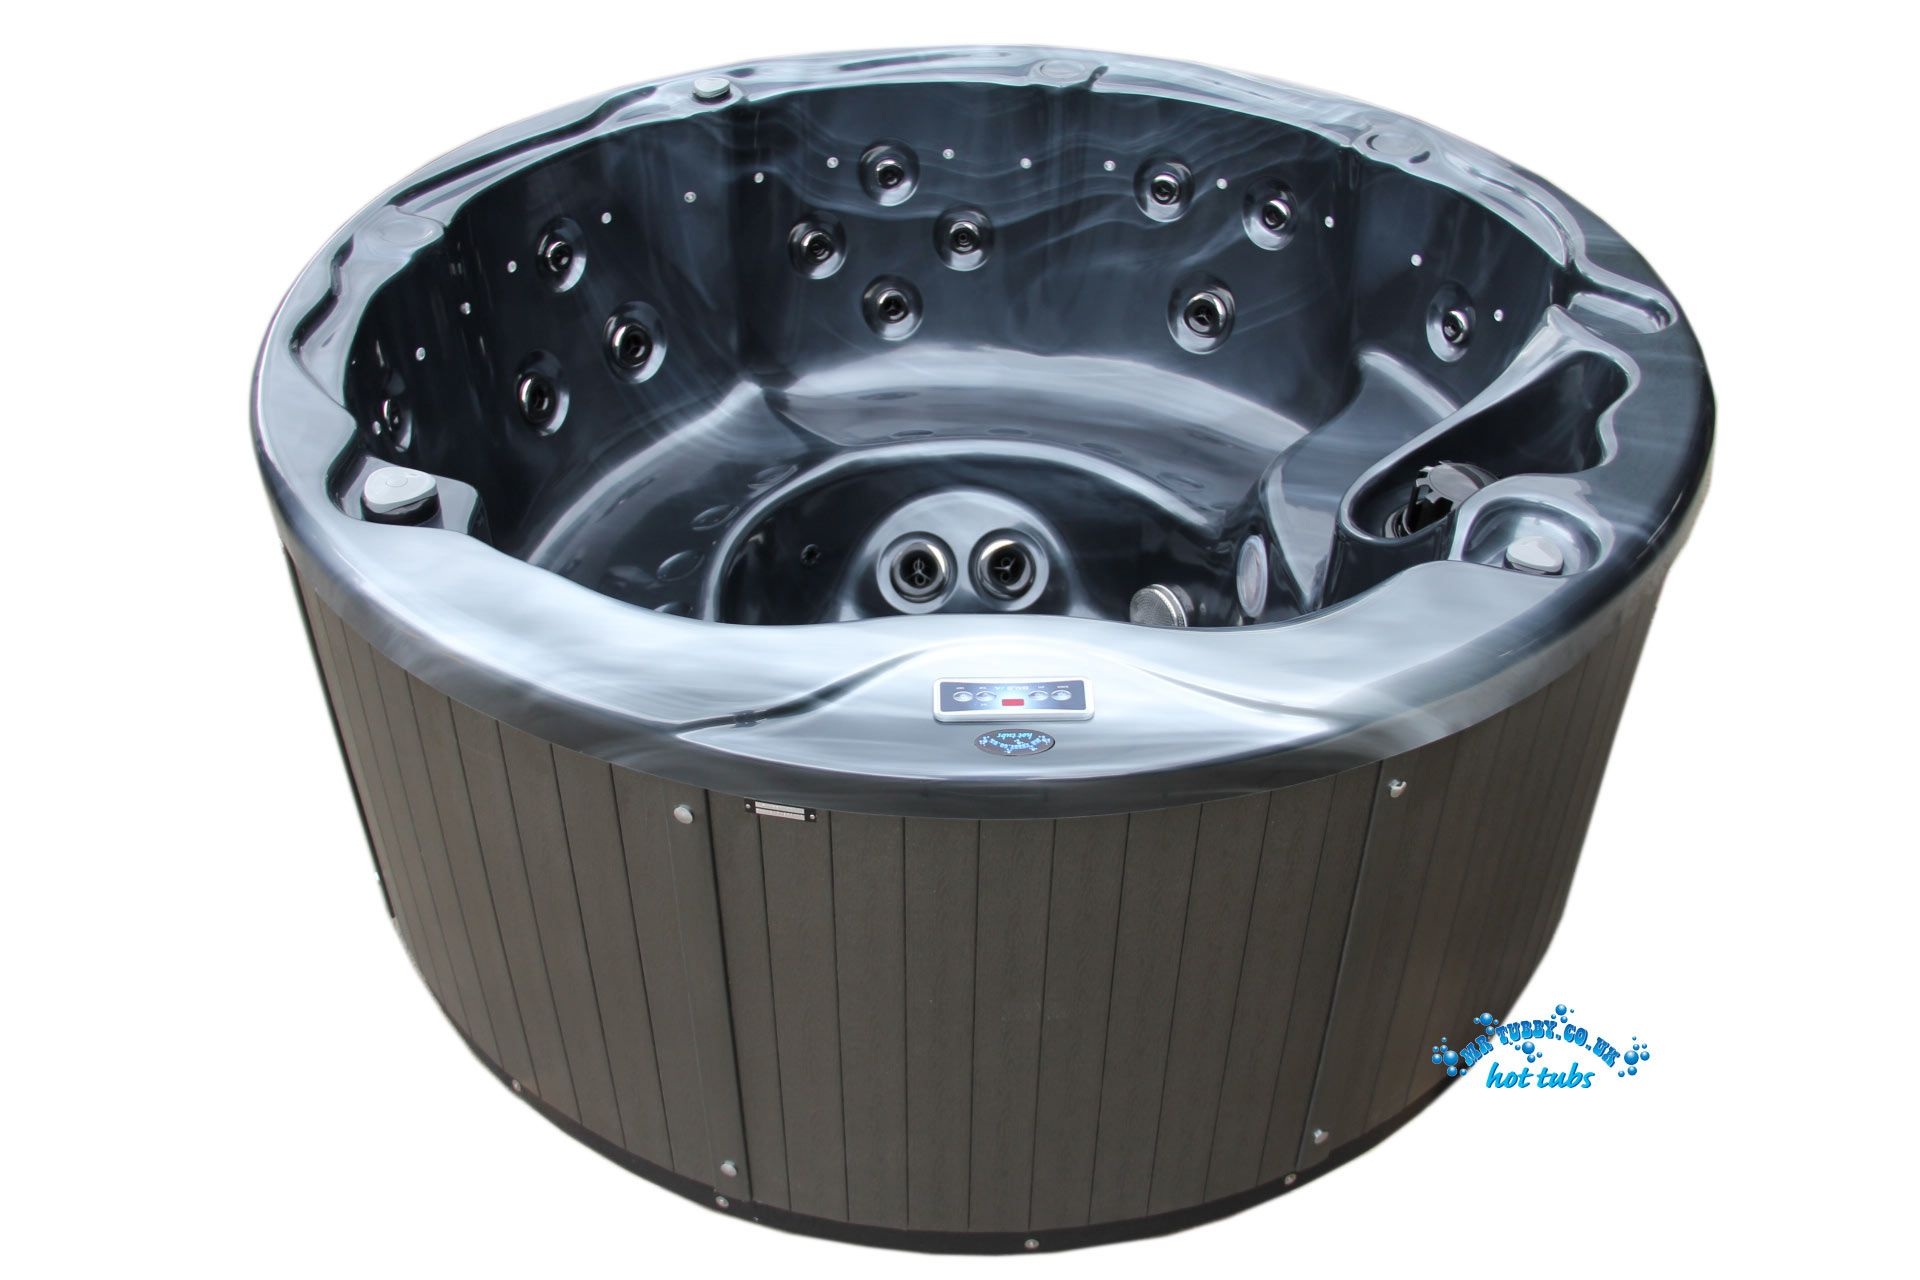 Balboa Hot Tub >> Jupiter Hot Tub Spa Round 2 0m Diameter Lucite Shell Balboa